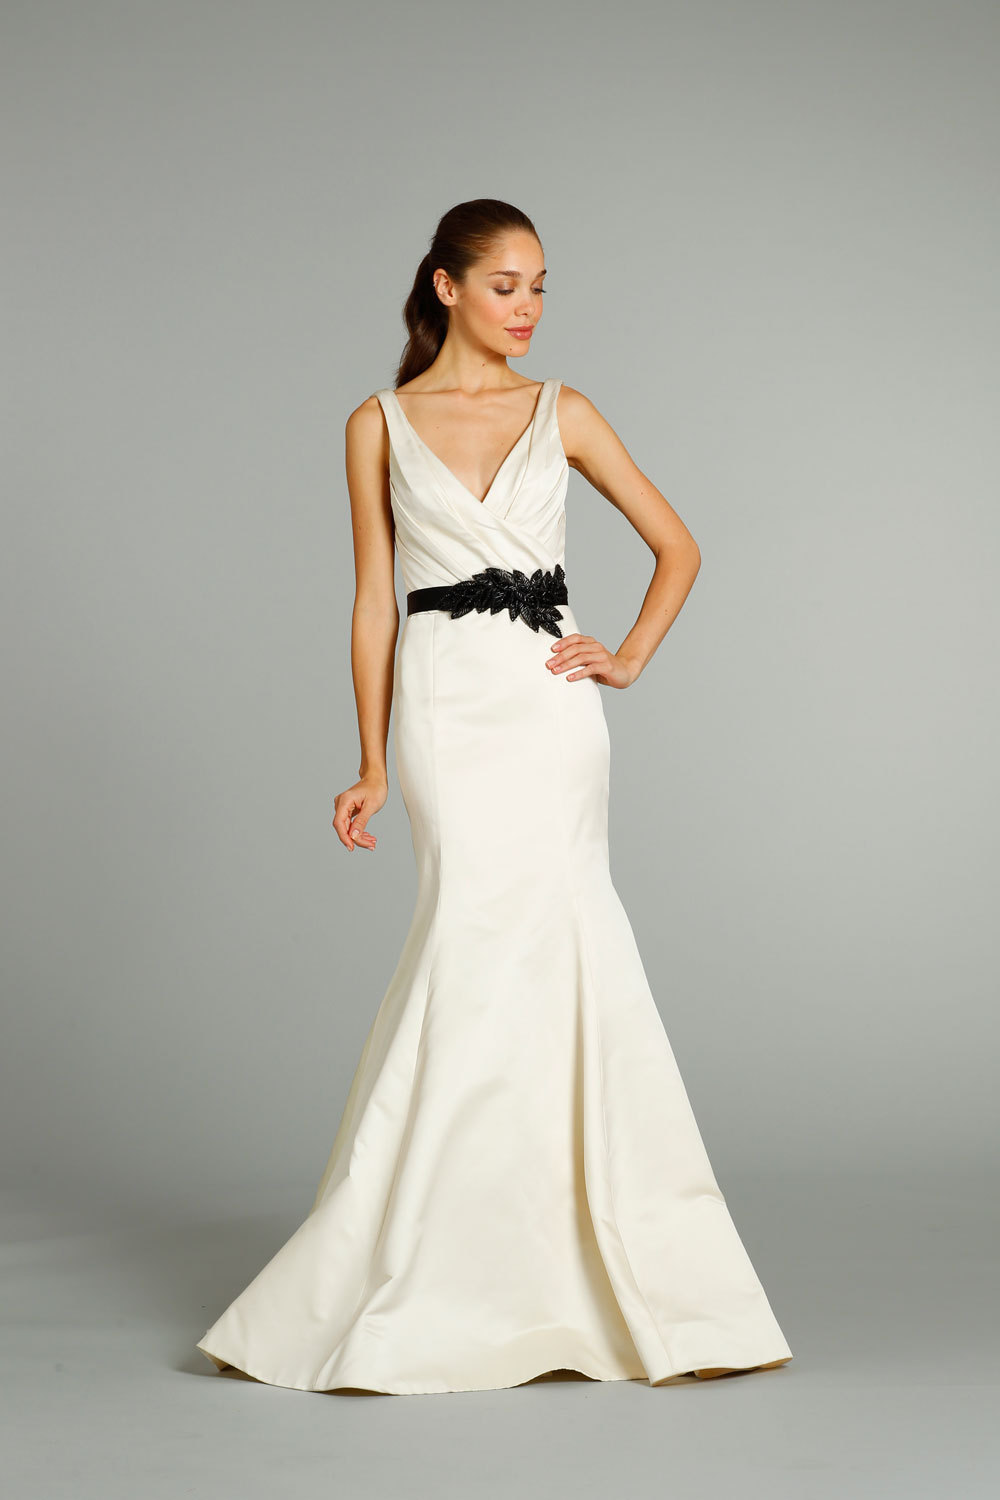 Fall-2012-wedding-dresses-jlm-couture-bridal-jim-hjelm-8258_front.full